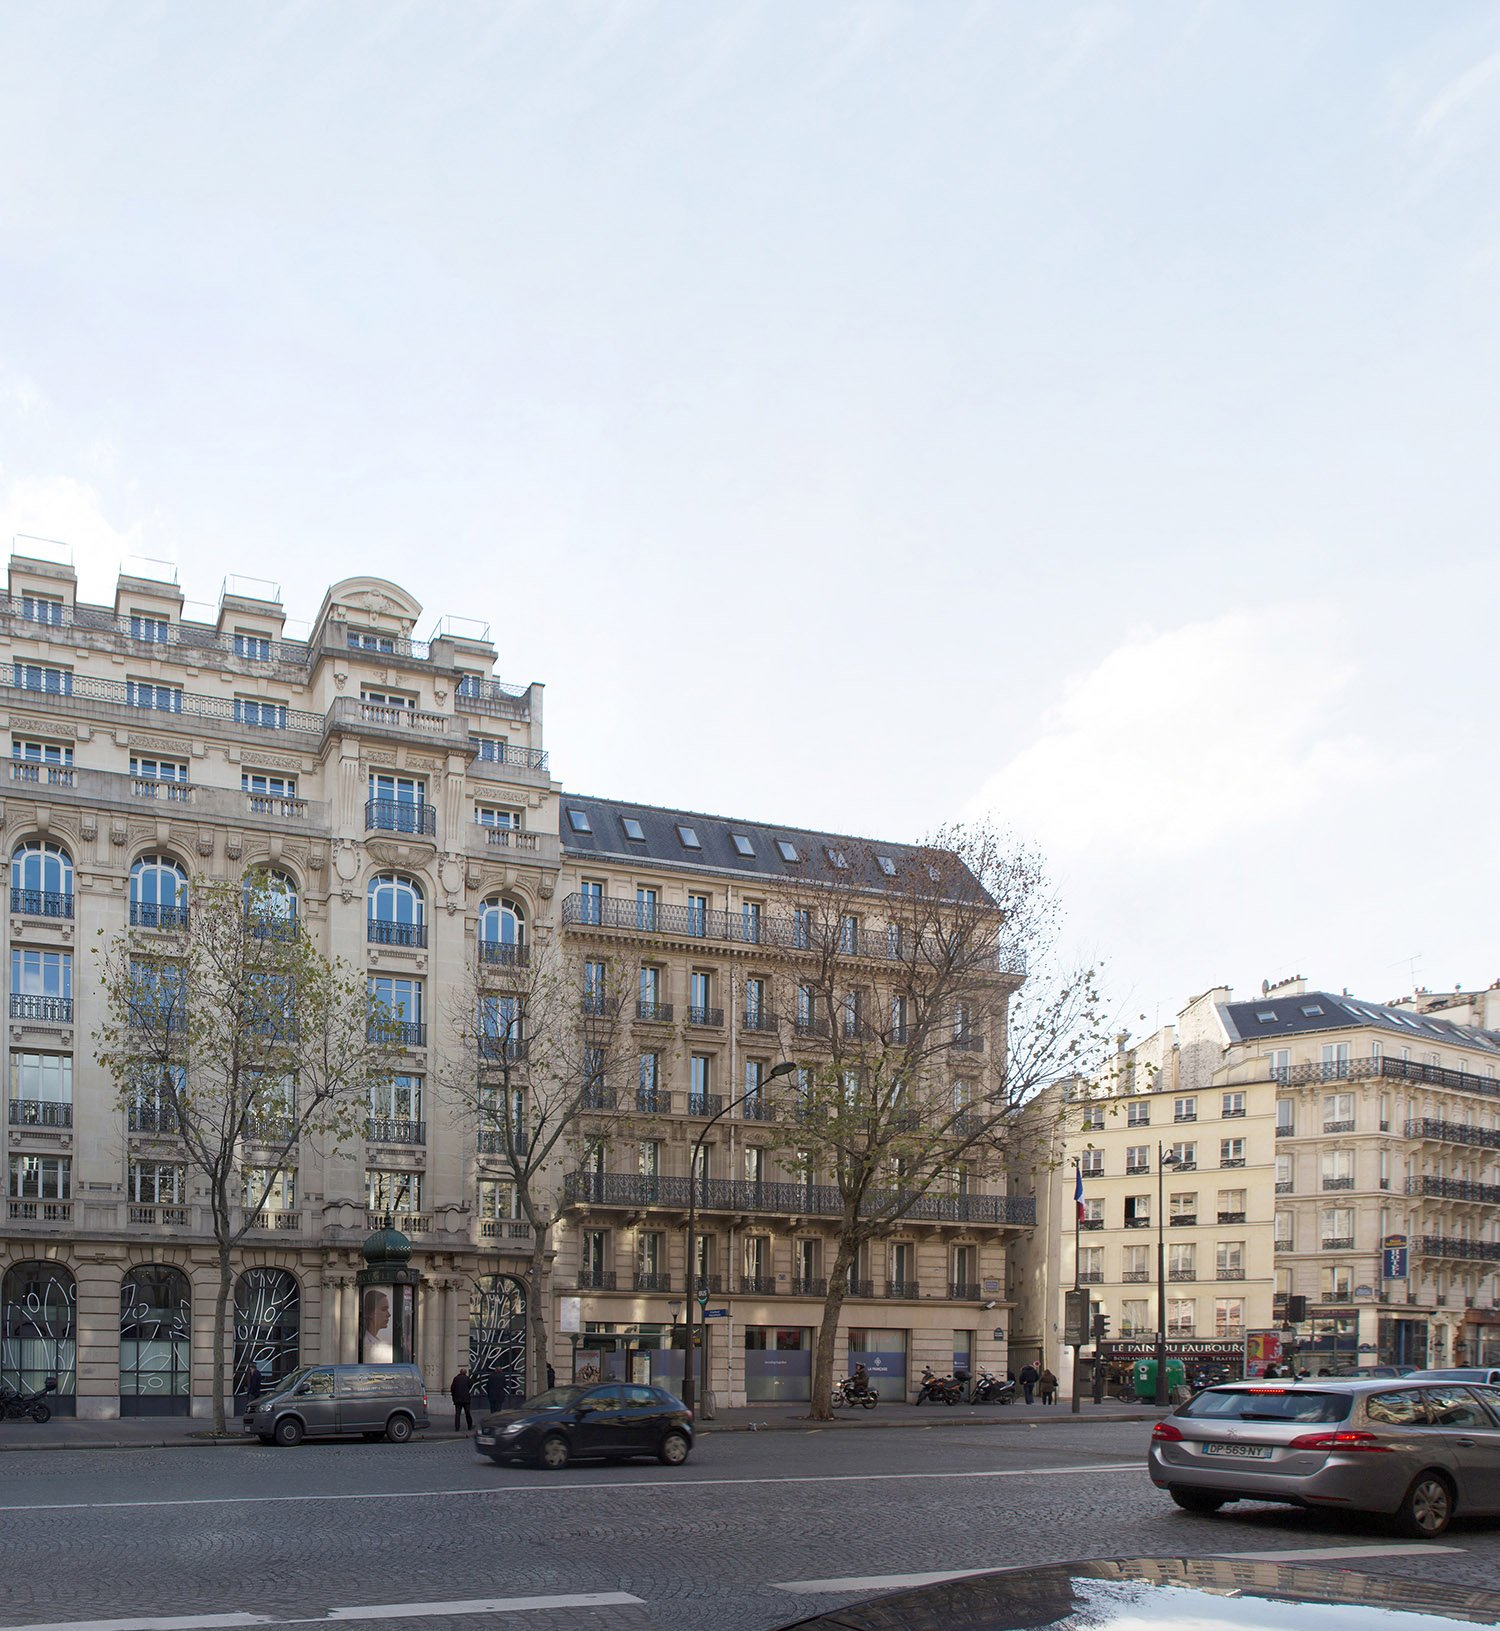 175 Haussmann before its restructuring, from the back view. ©PCA-STREAM}